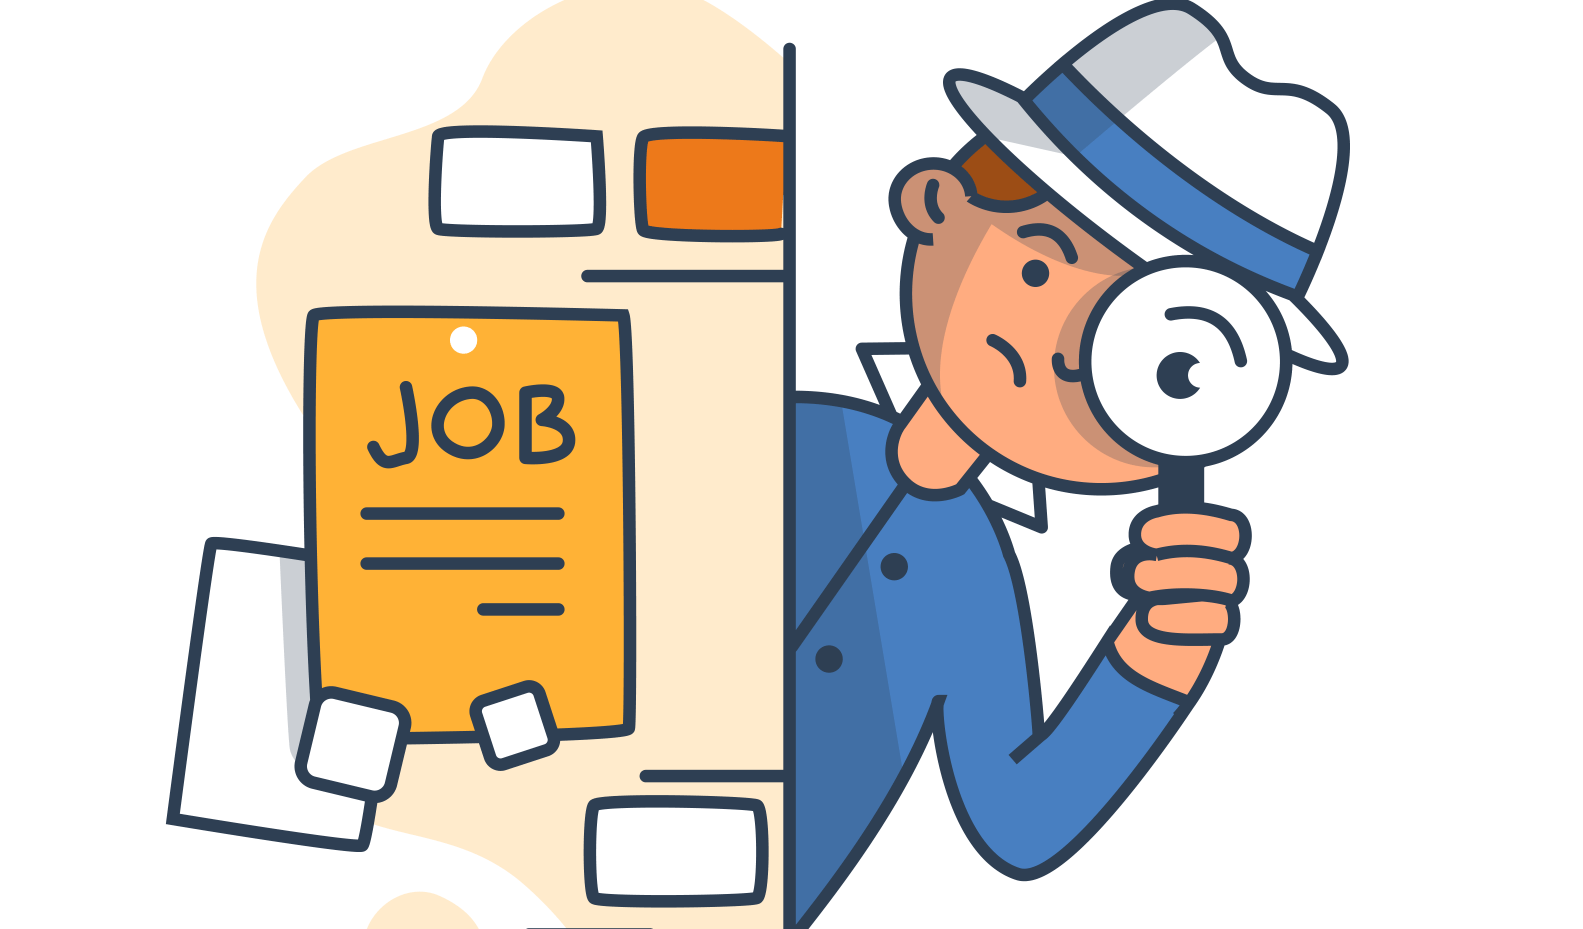 Jobs clipart job hunt. How to apply for